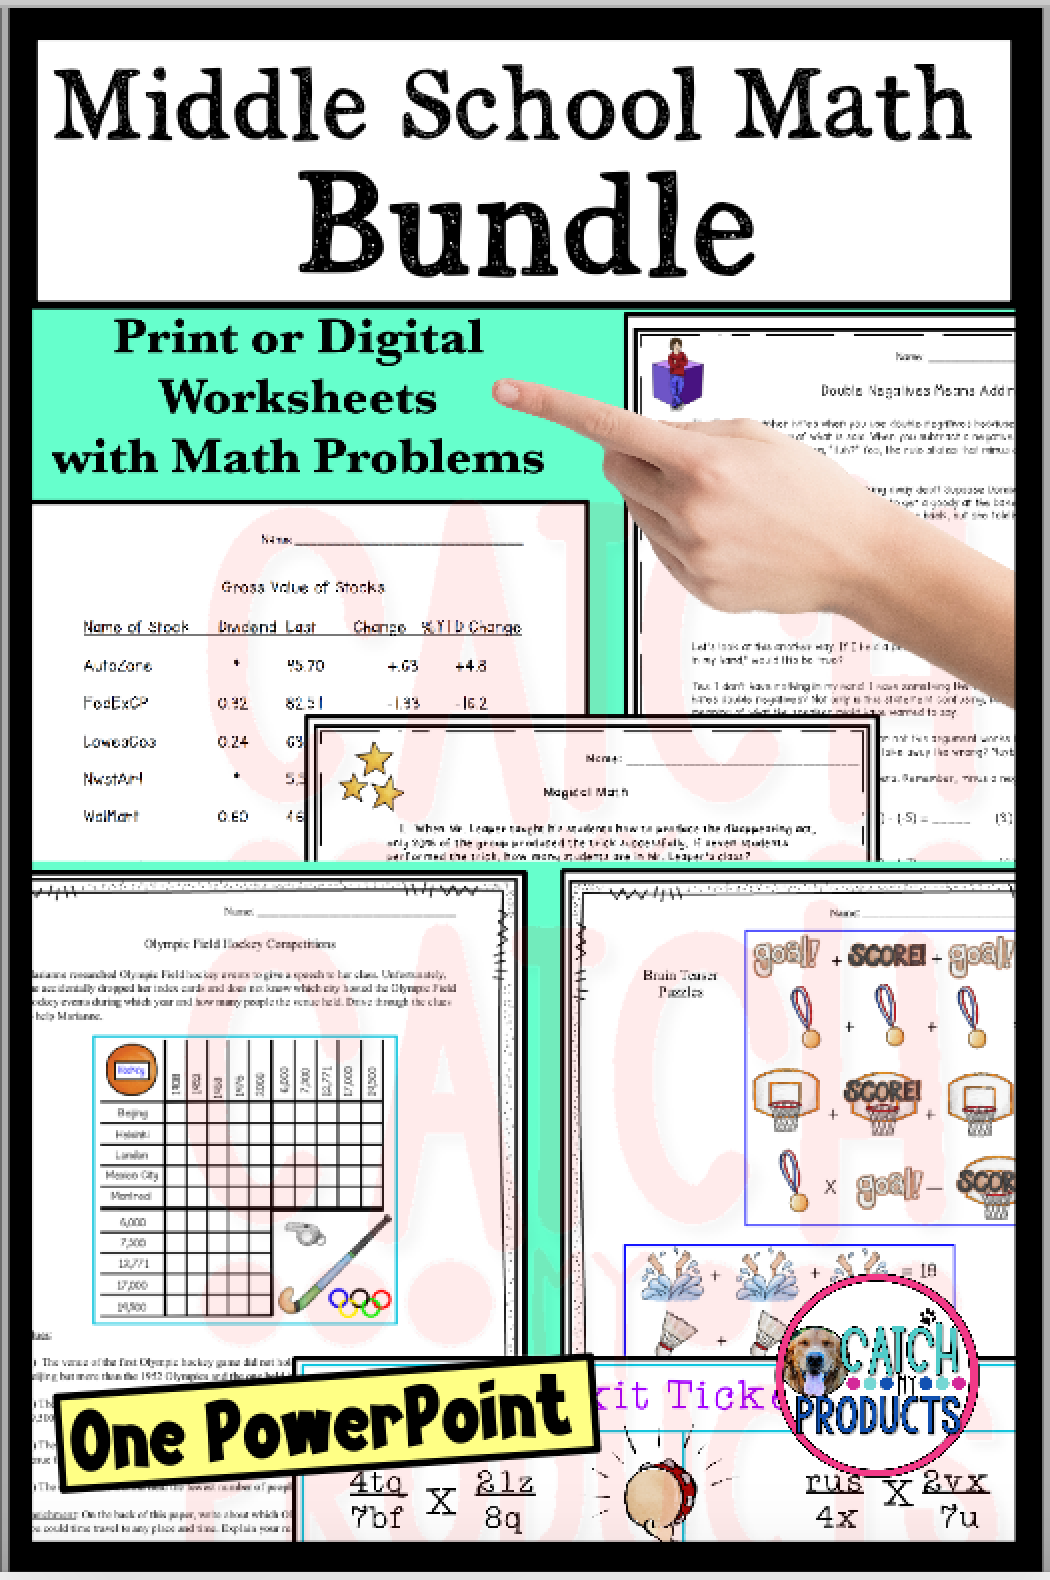 Middle School Math Worksheets And Powerpoint Lesson Bundle For Tweens In 2021 Middle School Math Math Lesson Plans Upper Elementary Resources [ 1580 x 1050 Pixel ]